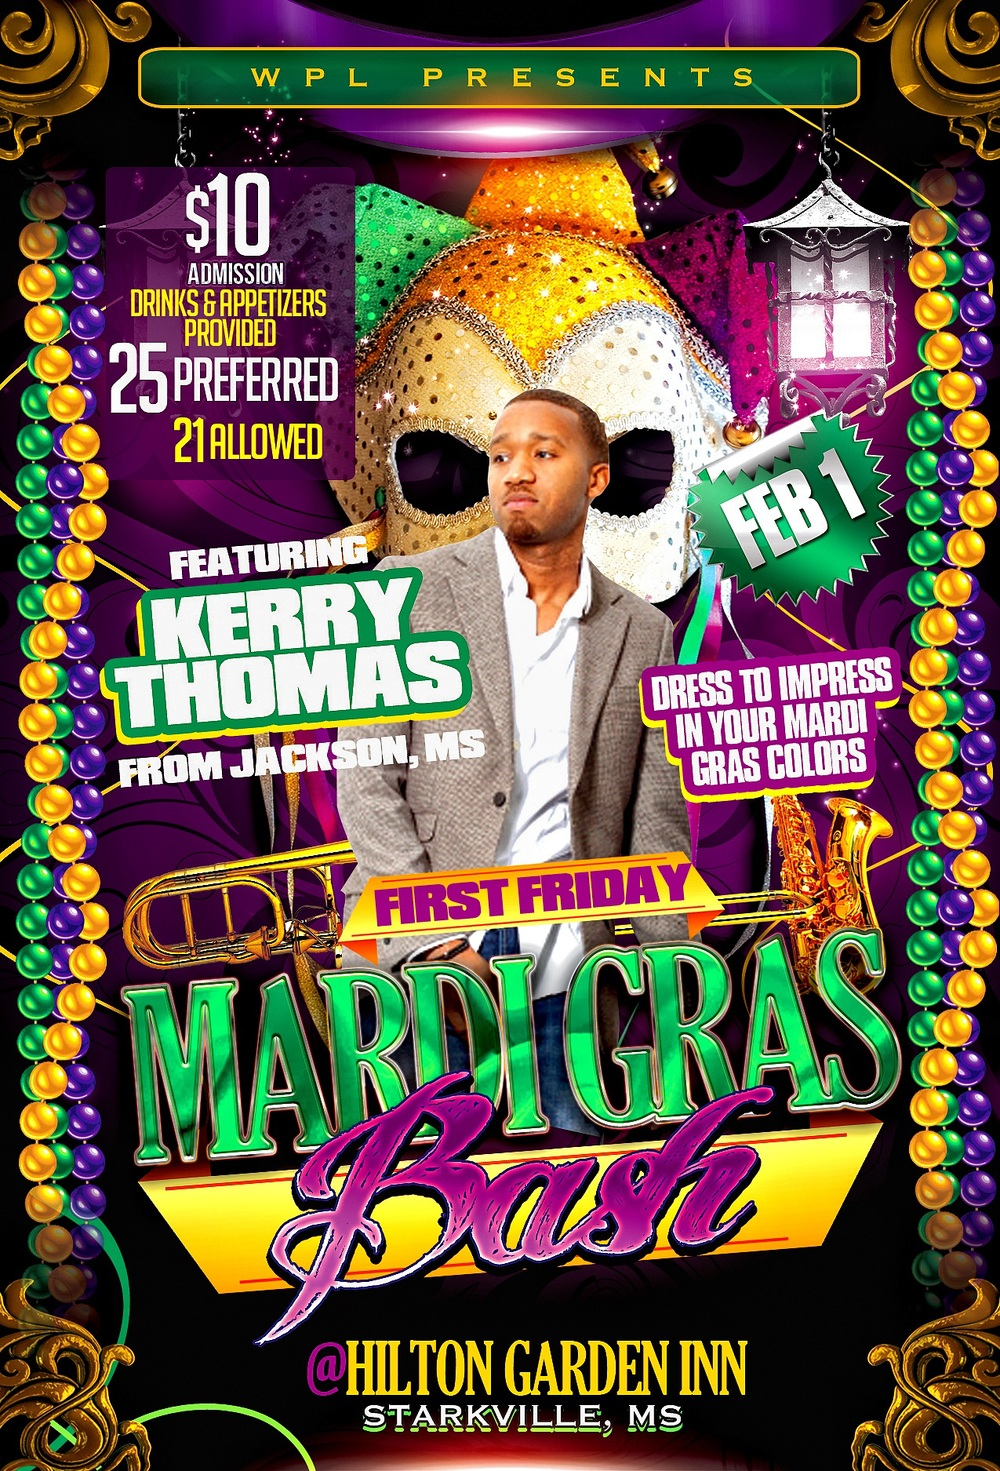 mardi gras flyer_Feb2013(2).jpg